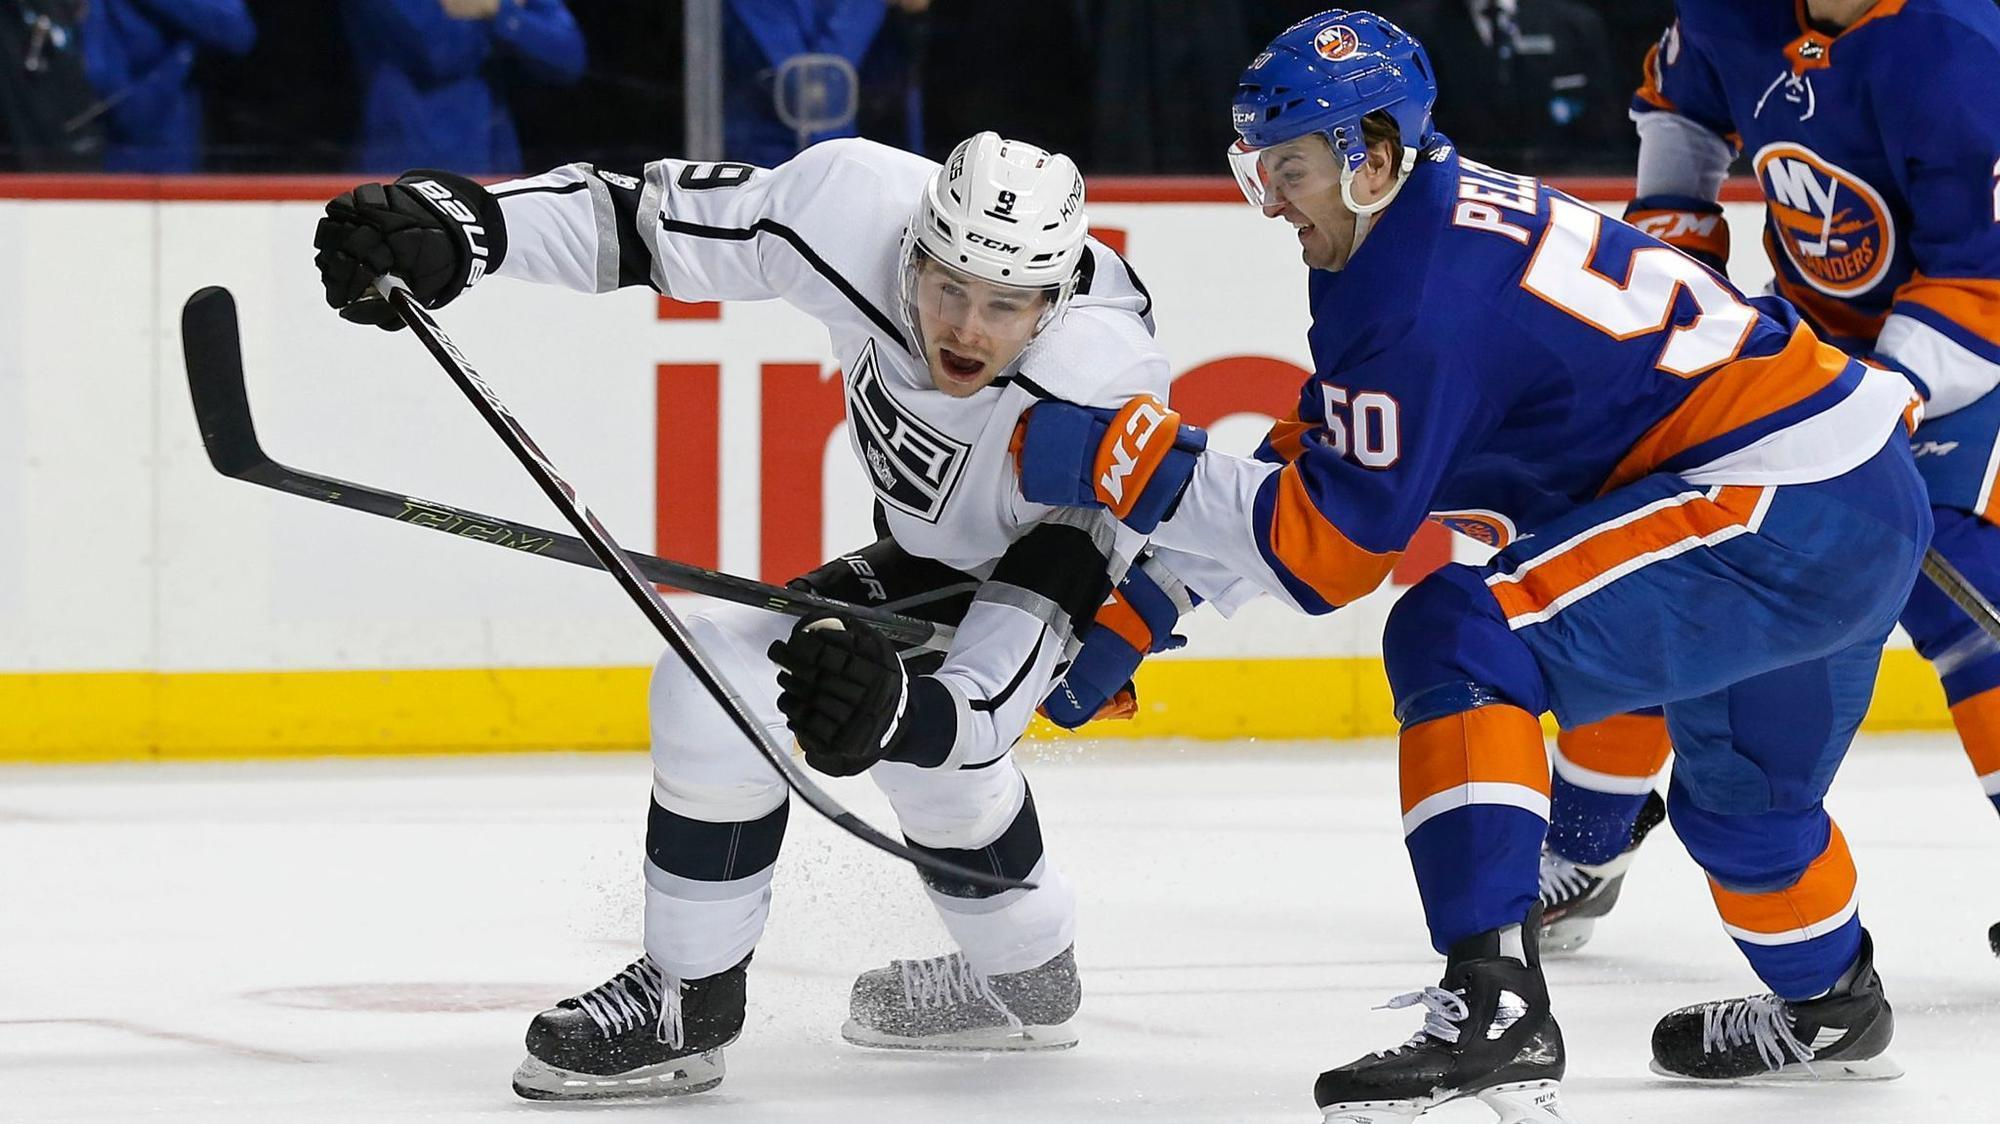 La-sp-kings-ny-islanders-20171216